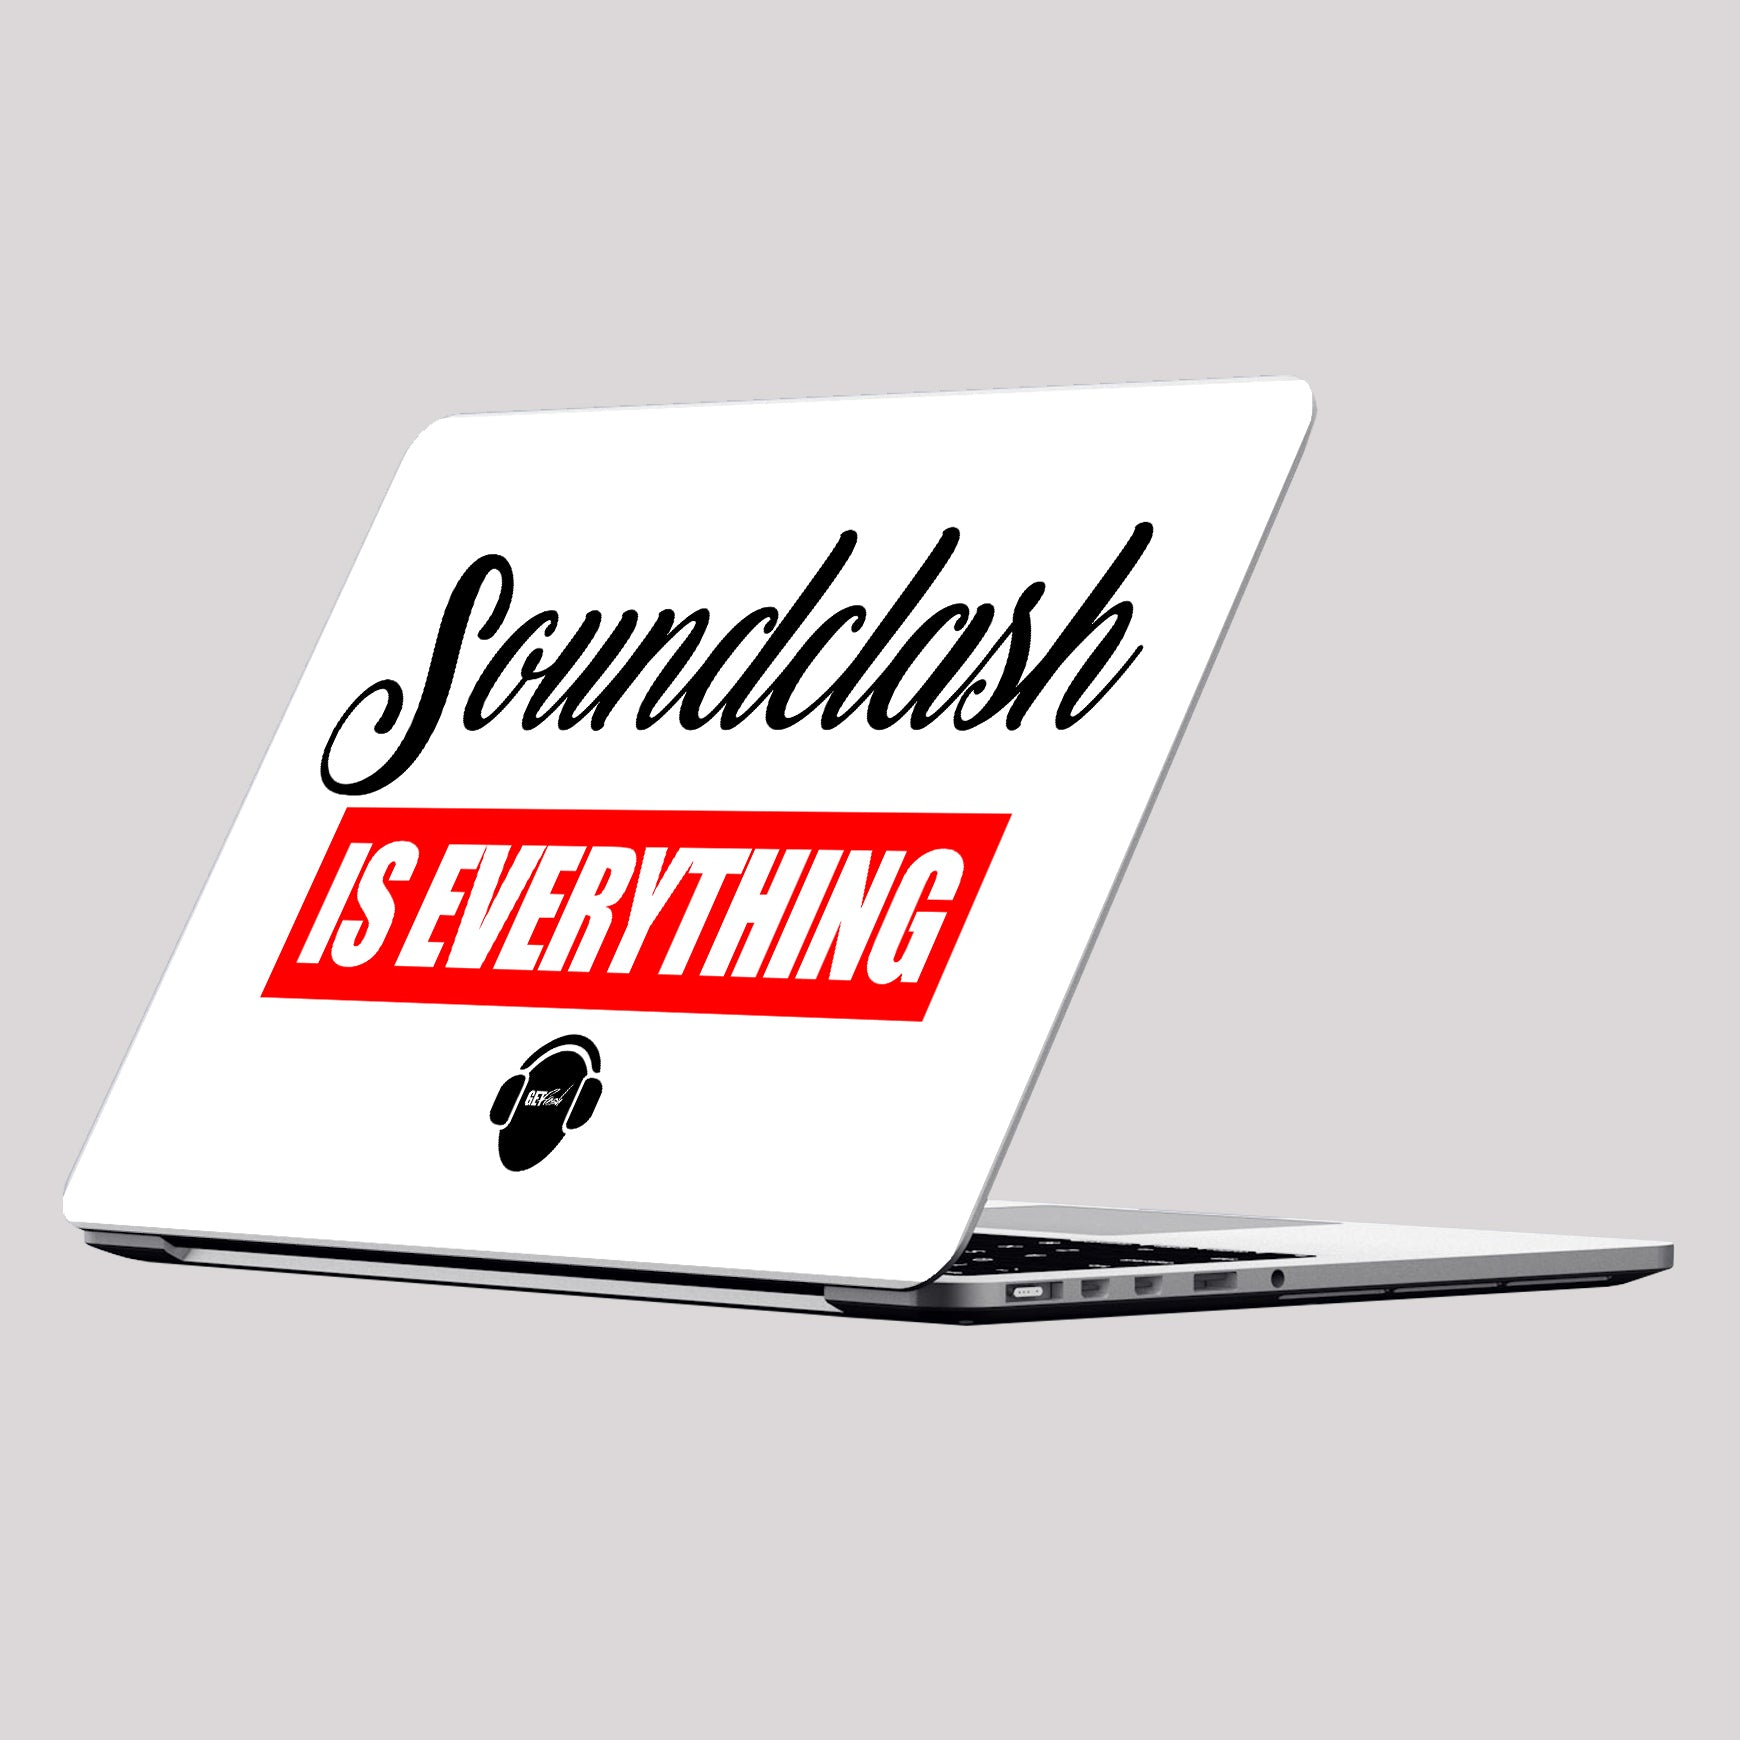 Soundclash is Everything Laptop Skin/Decal - GET FRESH MARKETPLACE